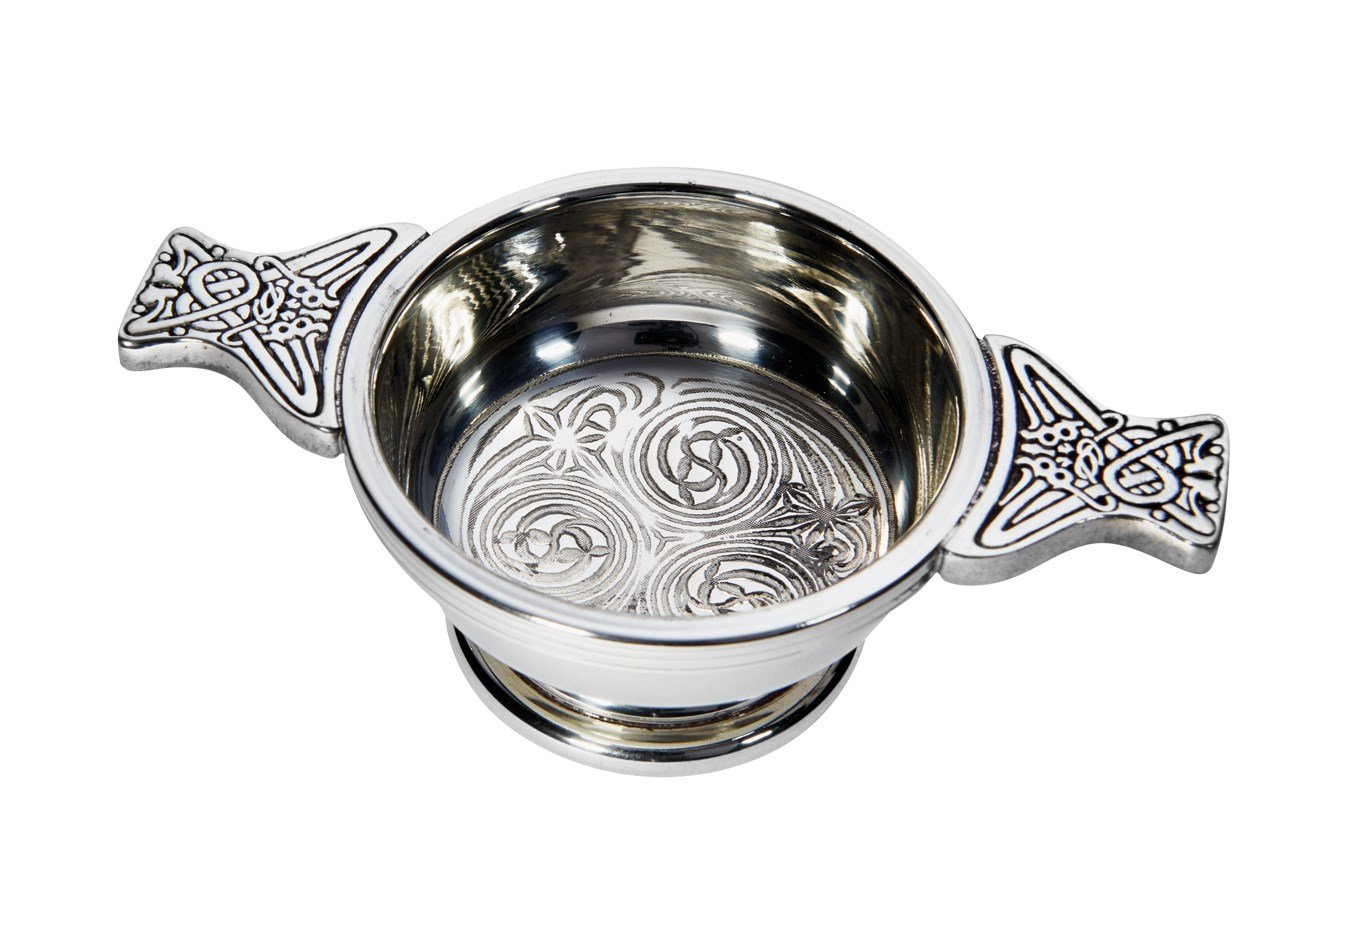 Wentworth Pewter - Small Kells Celtic Pewter Quaich Whisky Tasting Bowl Loving Cup Burns Night